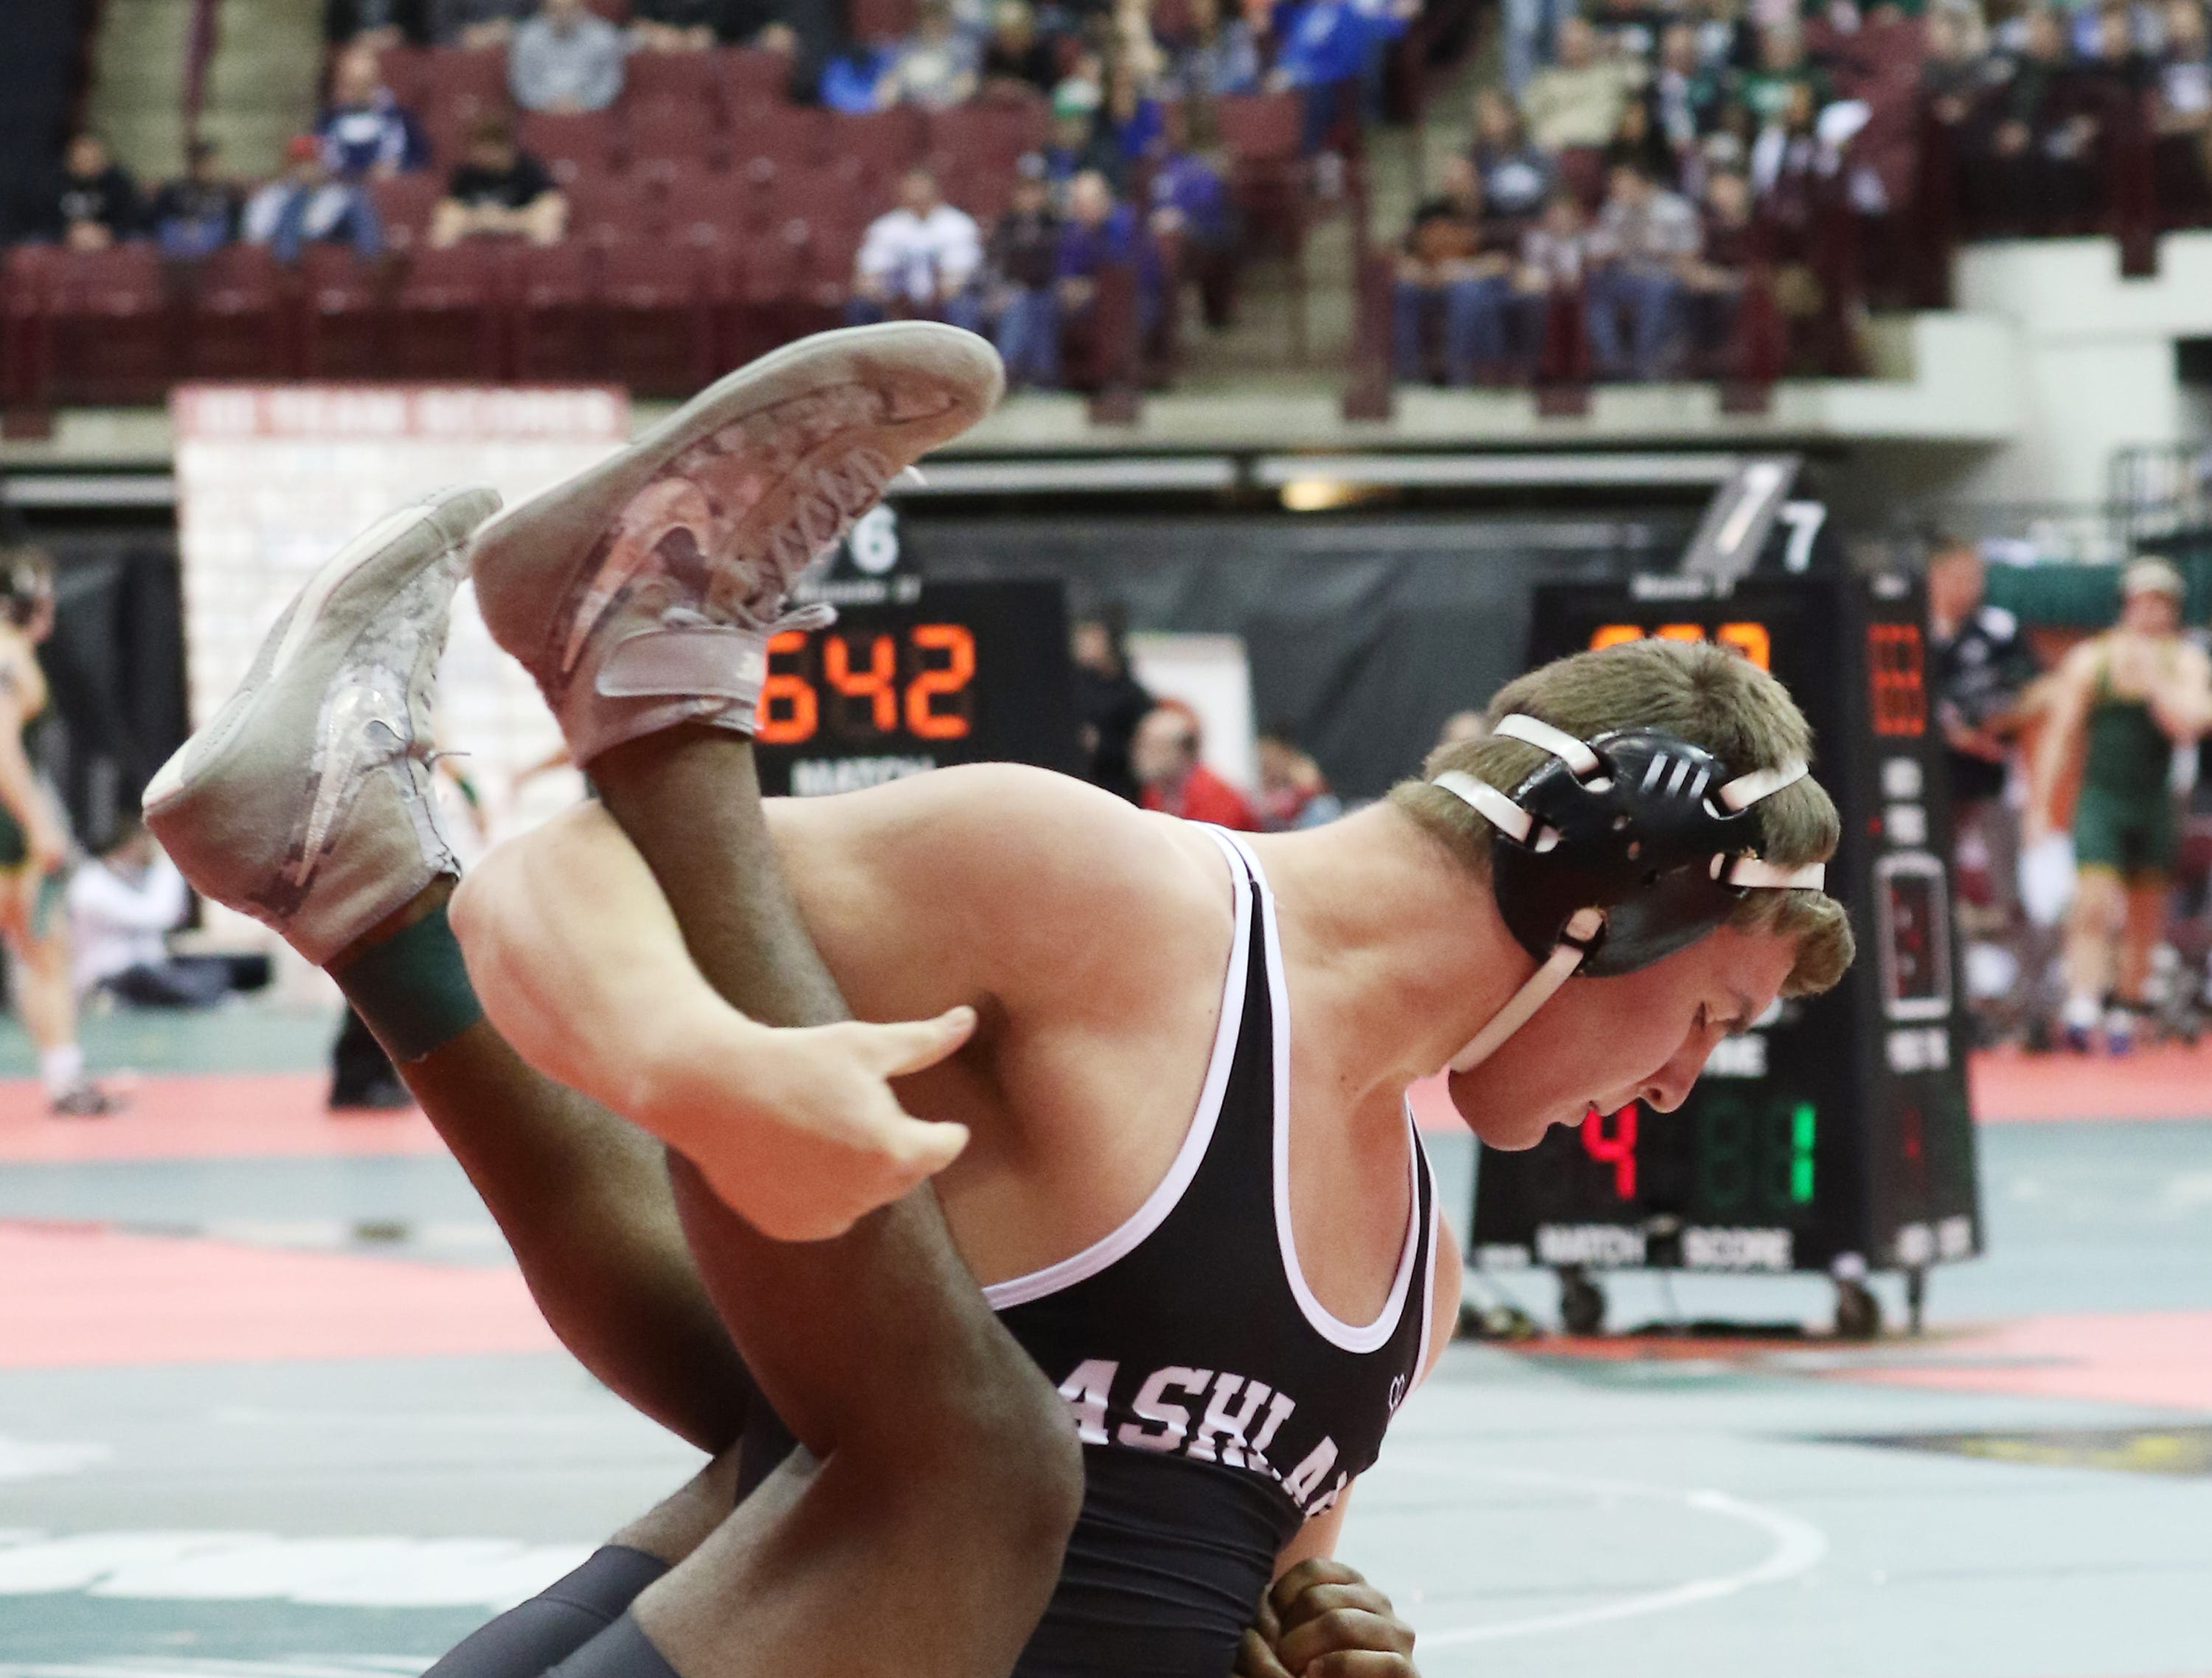 Ashland's Josh Beaver wrestles Clayton Northmont's Bryan Heyward in the 220 pound weight class at the Division I state wrestling tournament in Columbus on Friday.